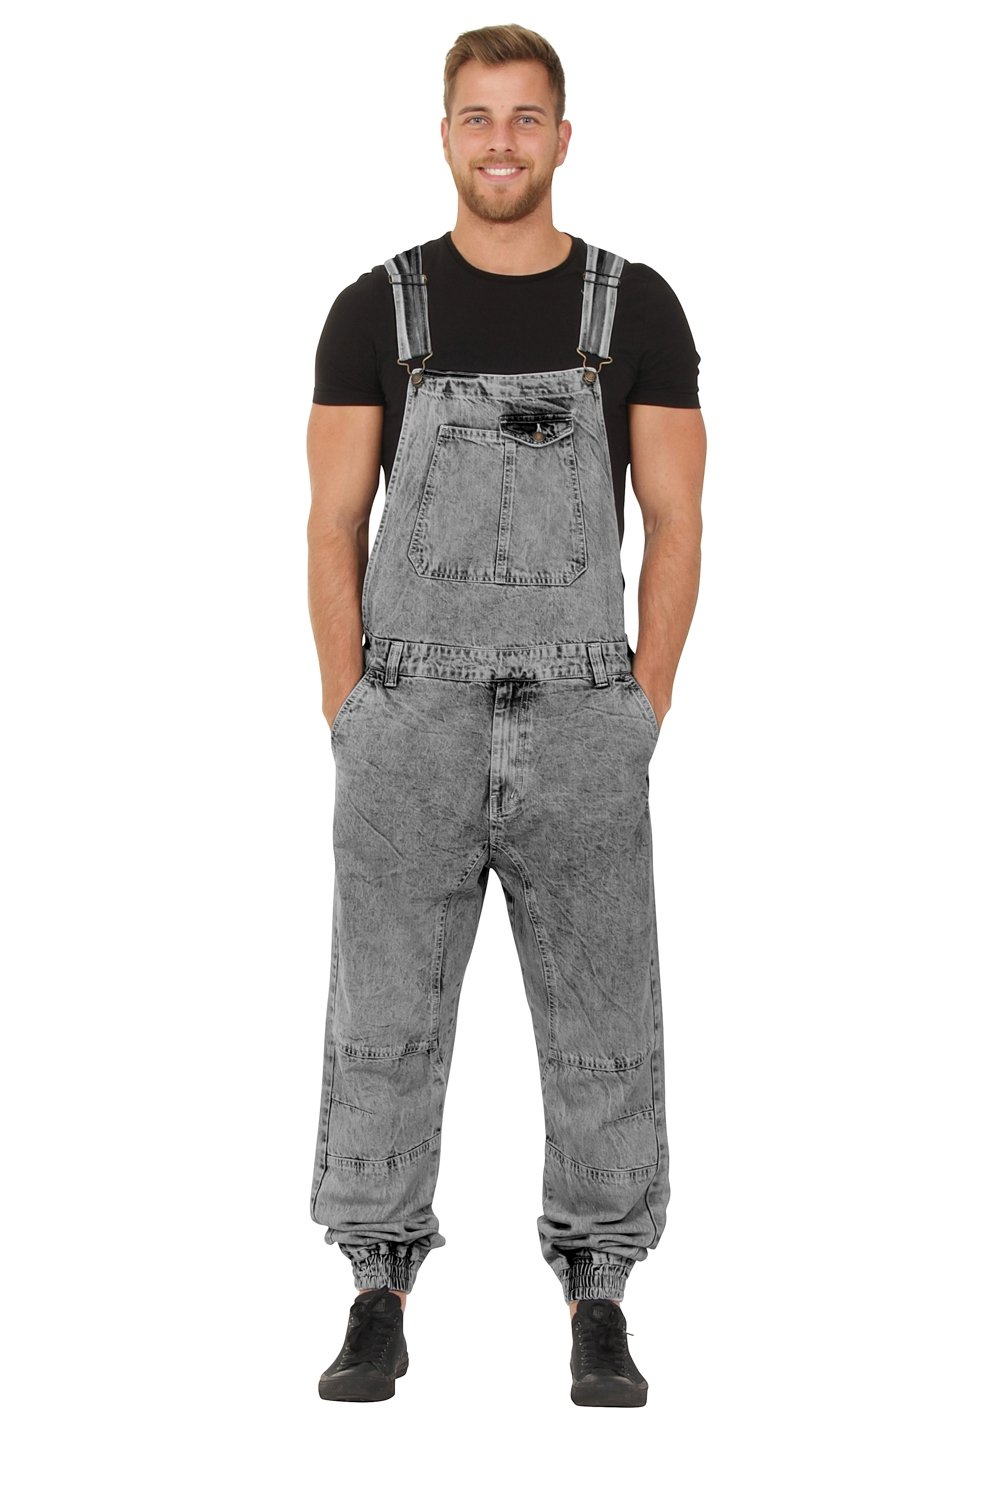 Mens Bib Overalls - Black Wash Dungarees Elasticated at Ankle G8 One